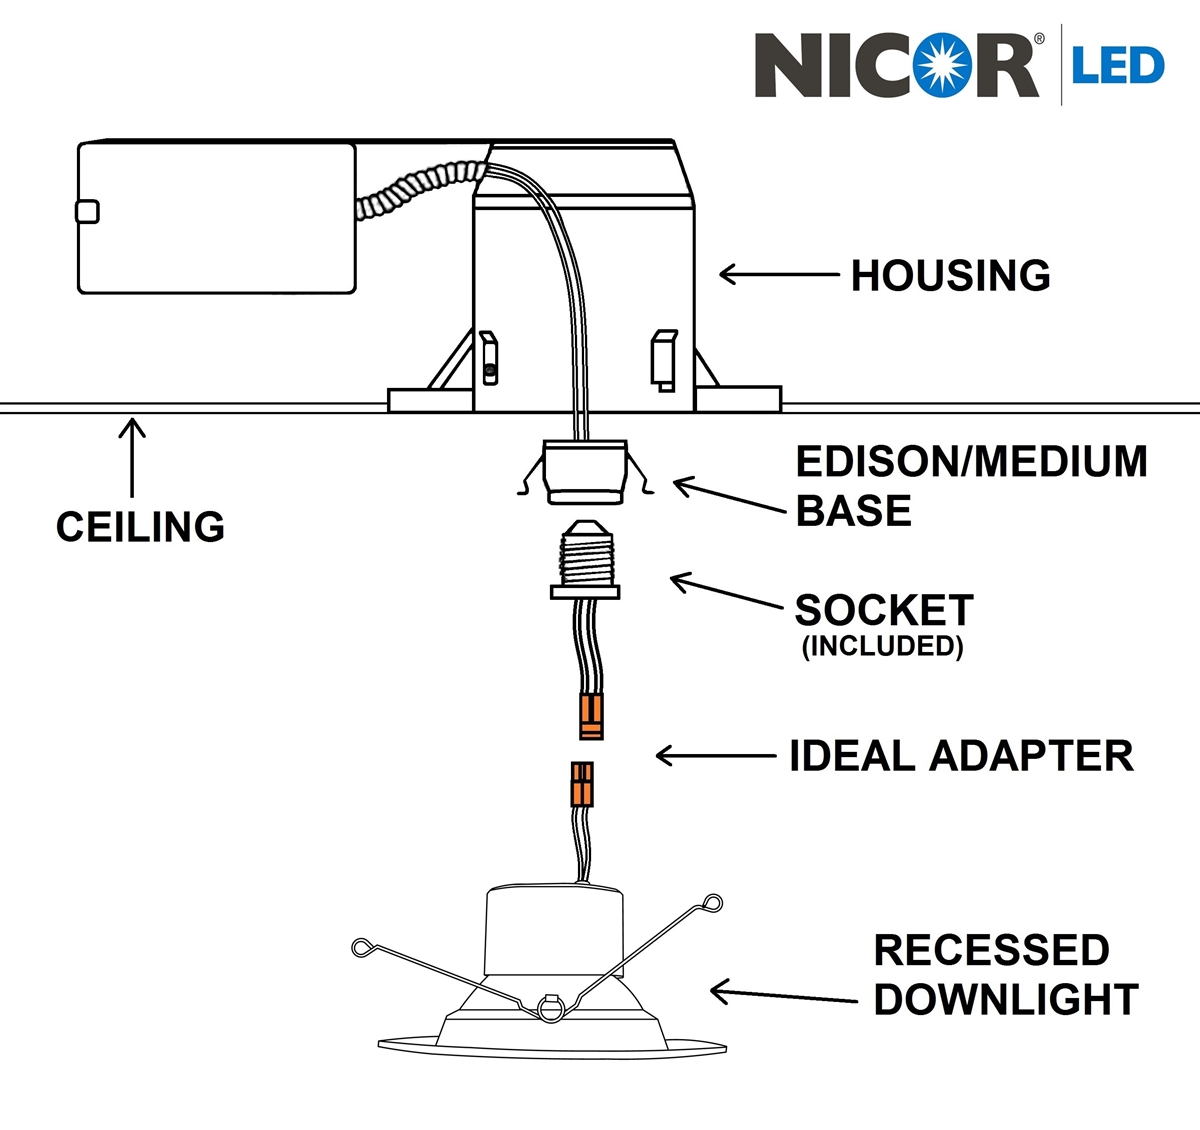 nicor exit sign wiring diagram completed wiring diagramsnicor dcr56 800lm dimmable recessed led downlight elevator wiring [ 1200 x 1130 Pixel ]